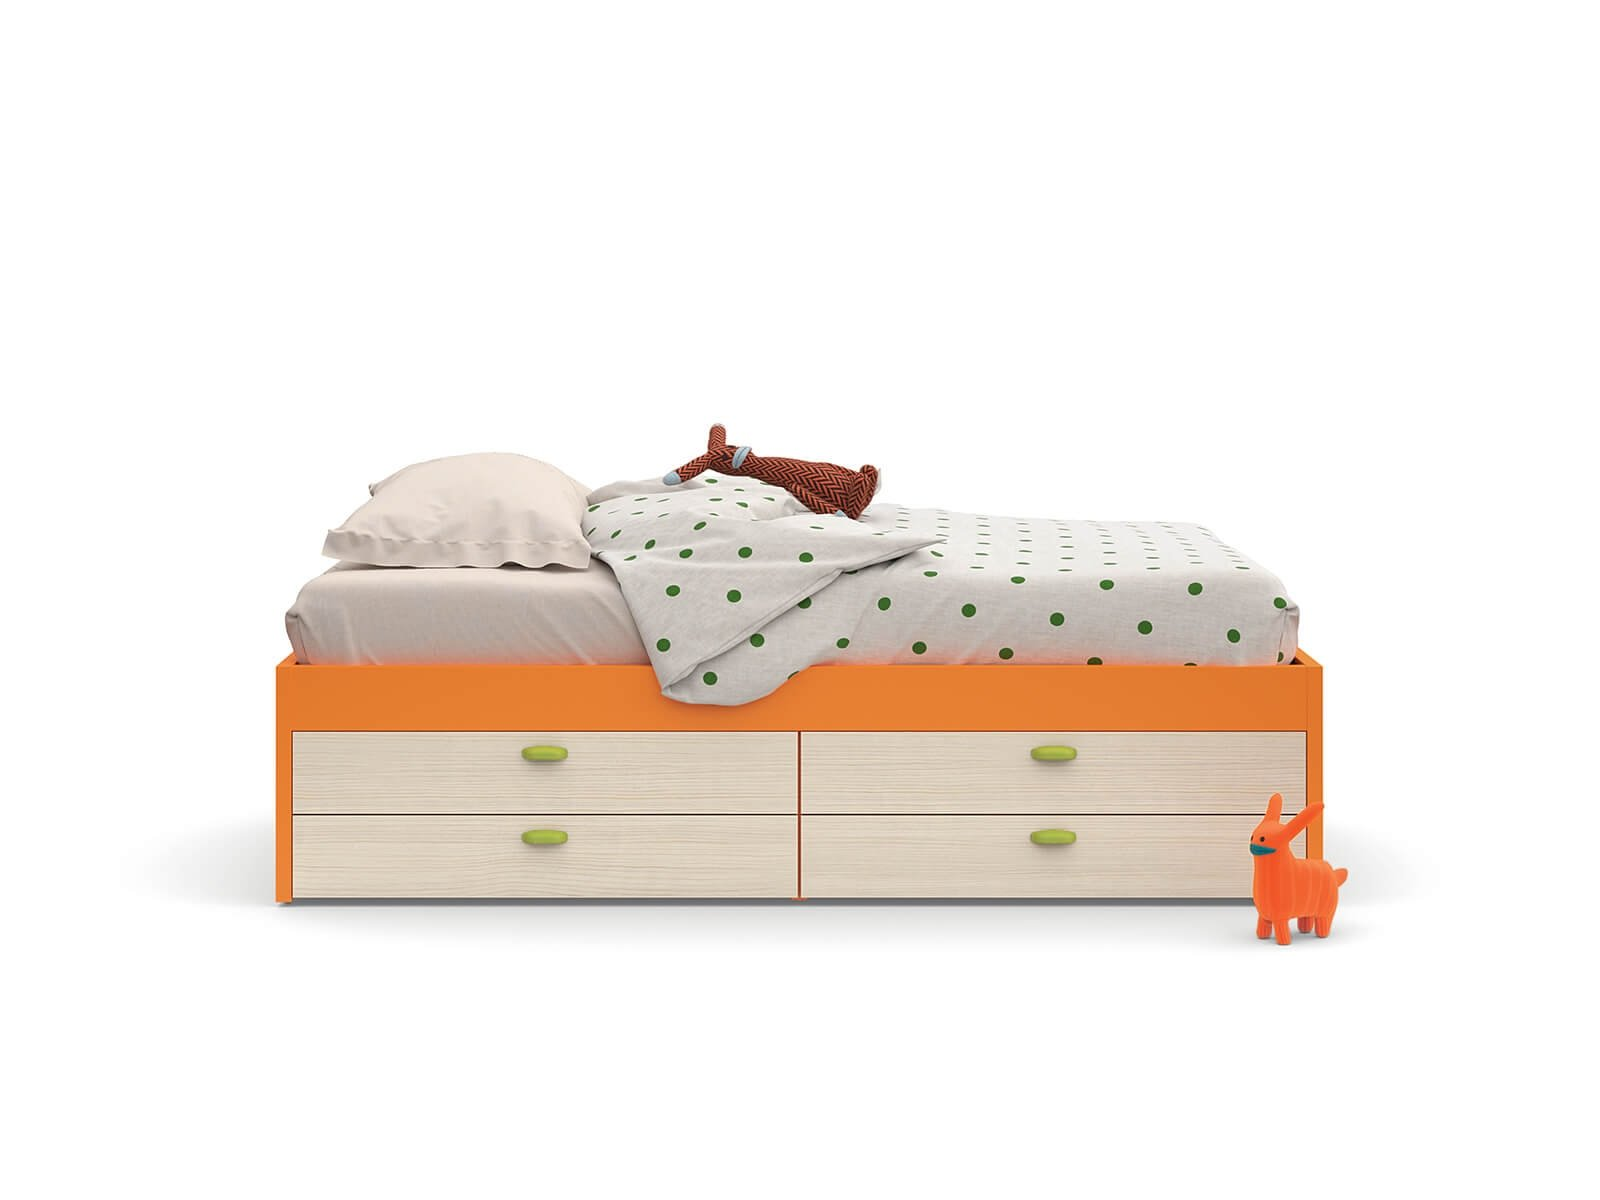 Equipped platform bed